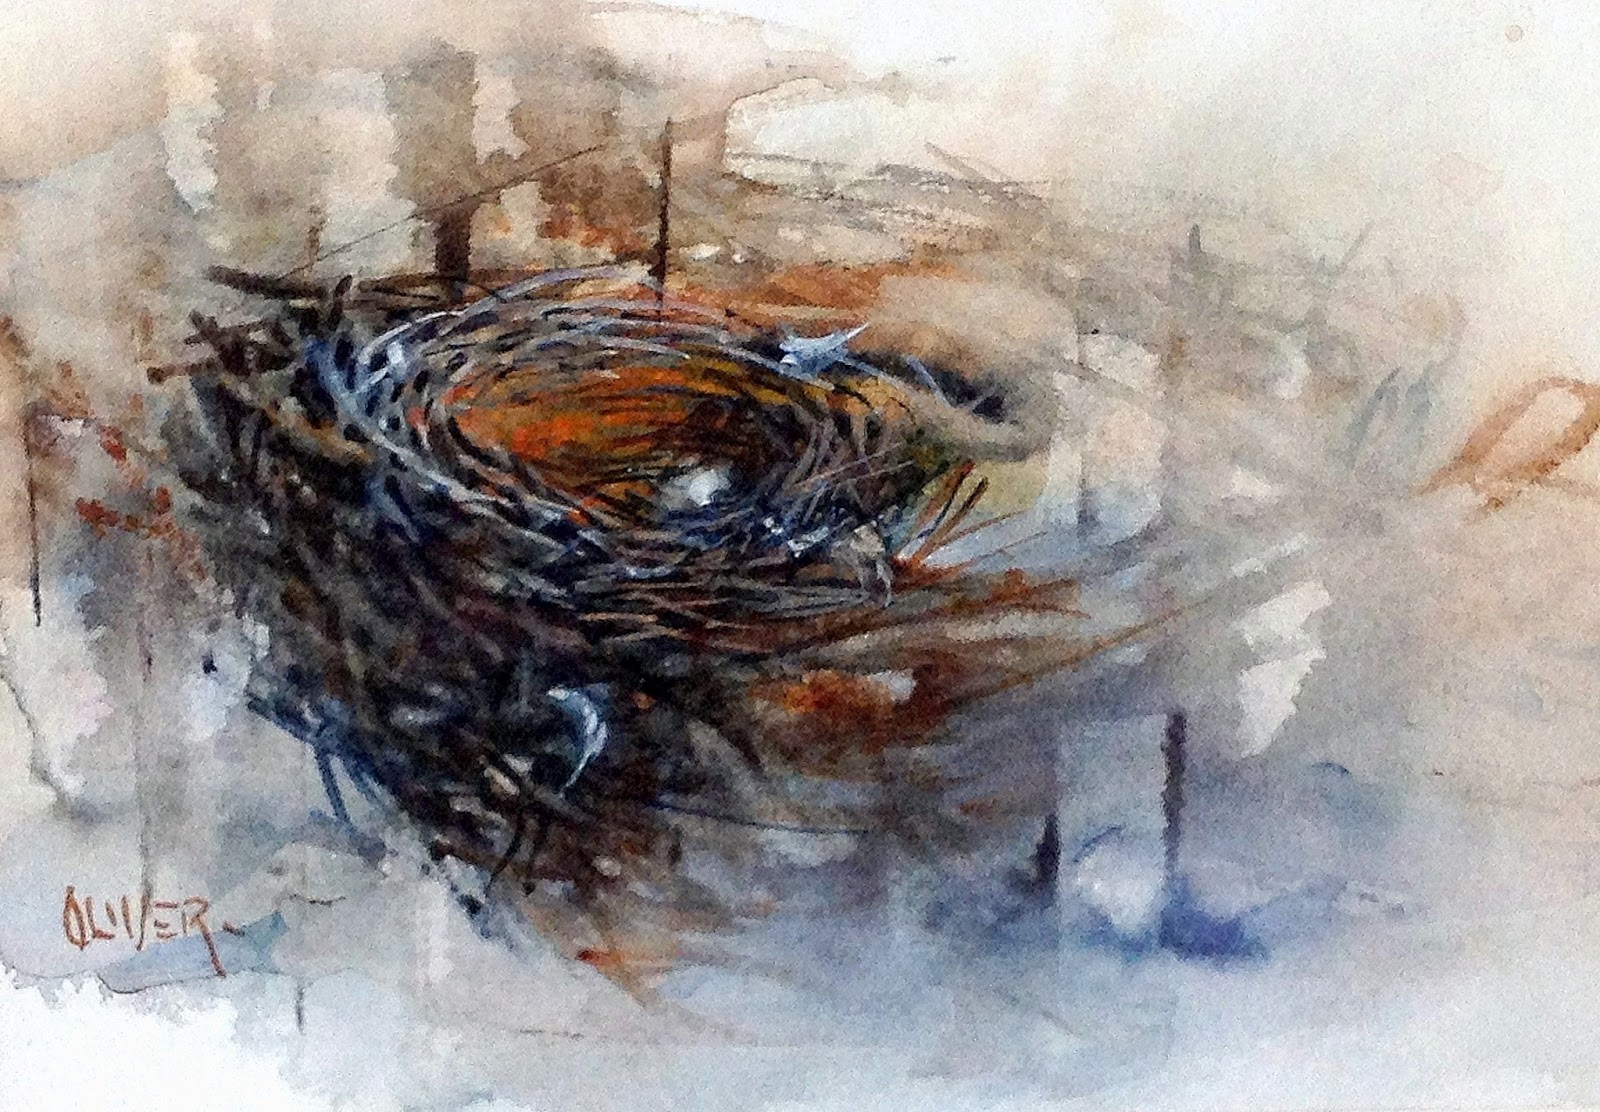 Artists Using Fracturing In Painting